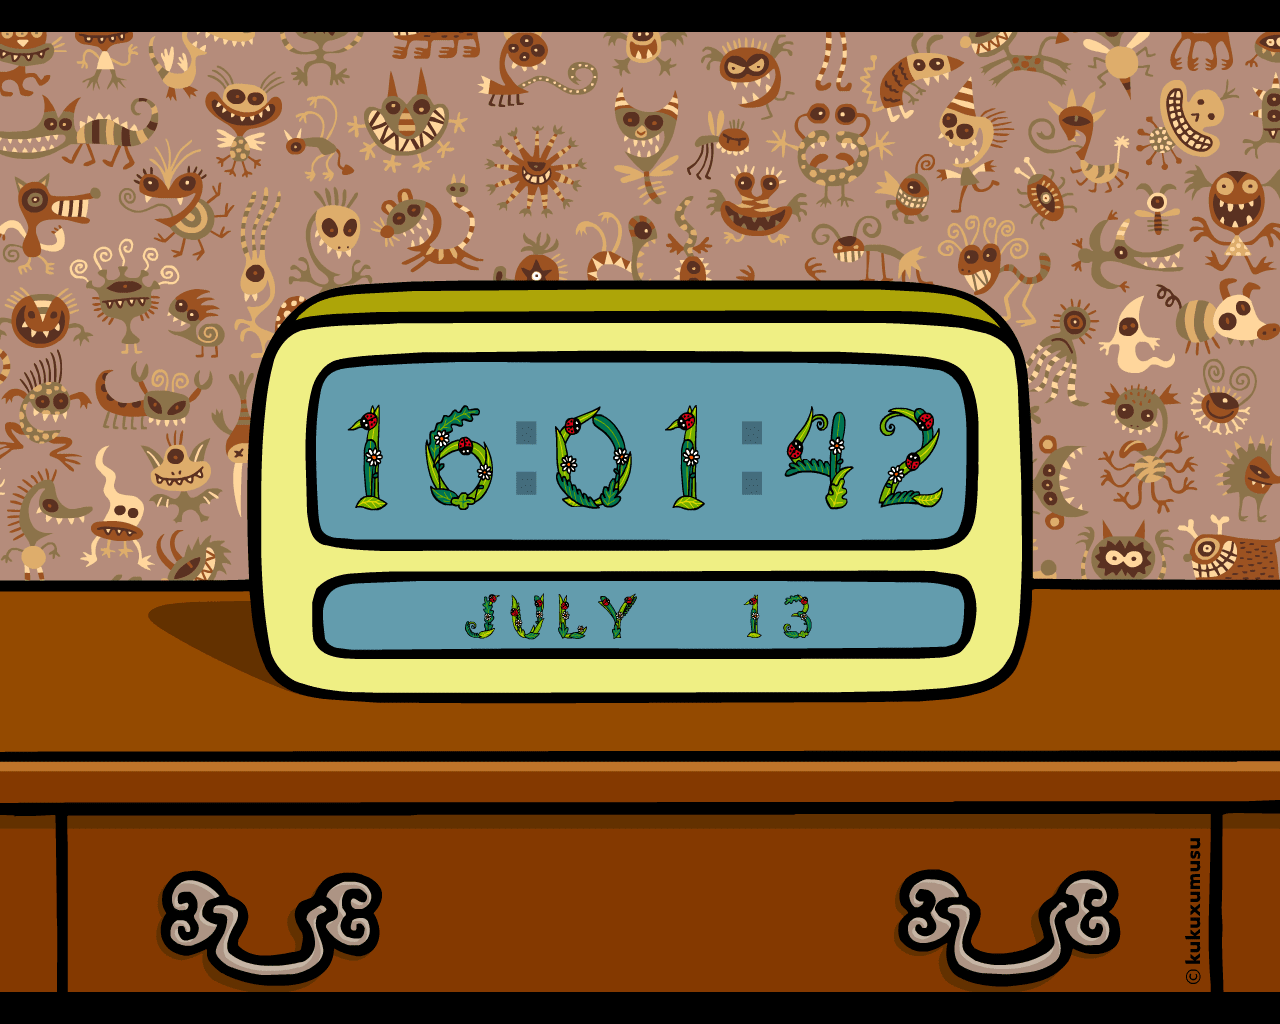 Kukuxumusu Digital Clock